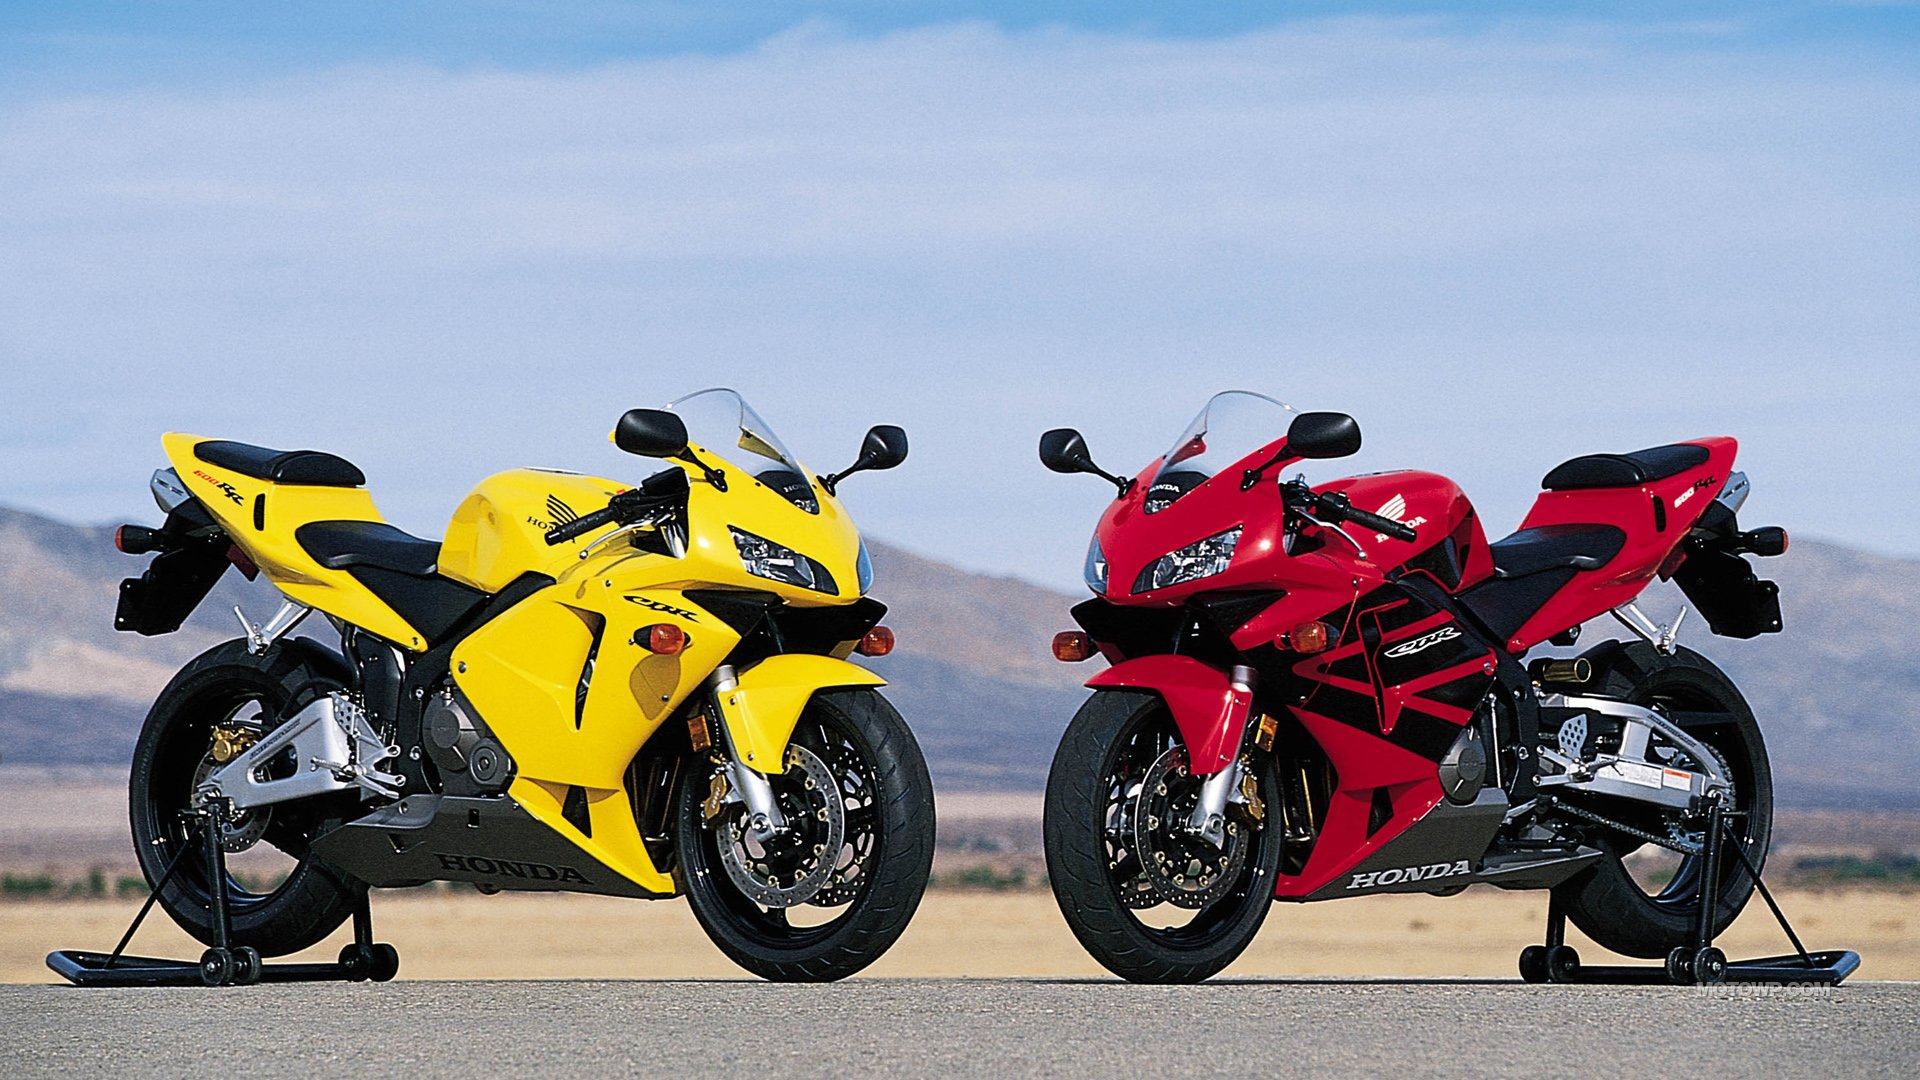 Honda CBR600RR Full HD Wallpaper And Background Image